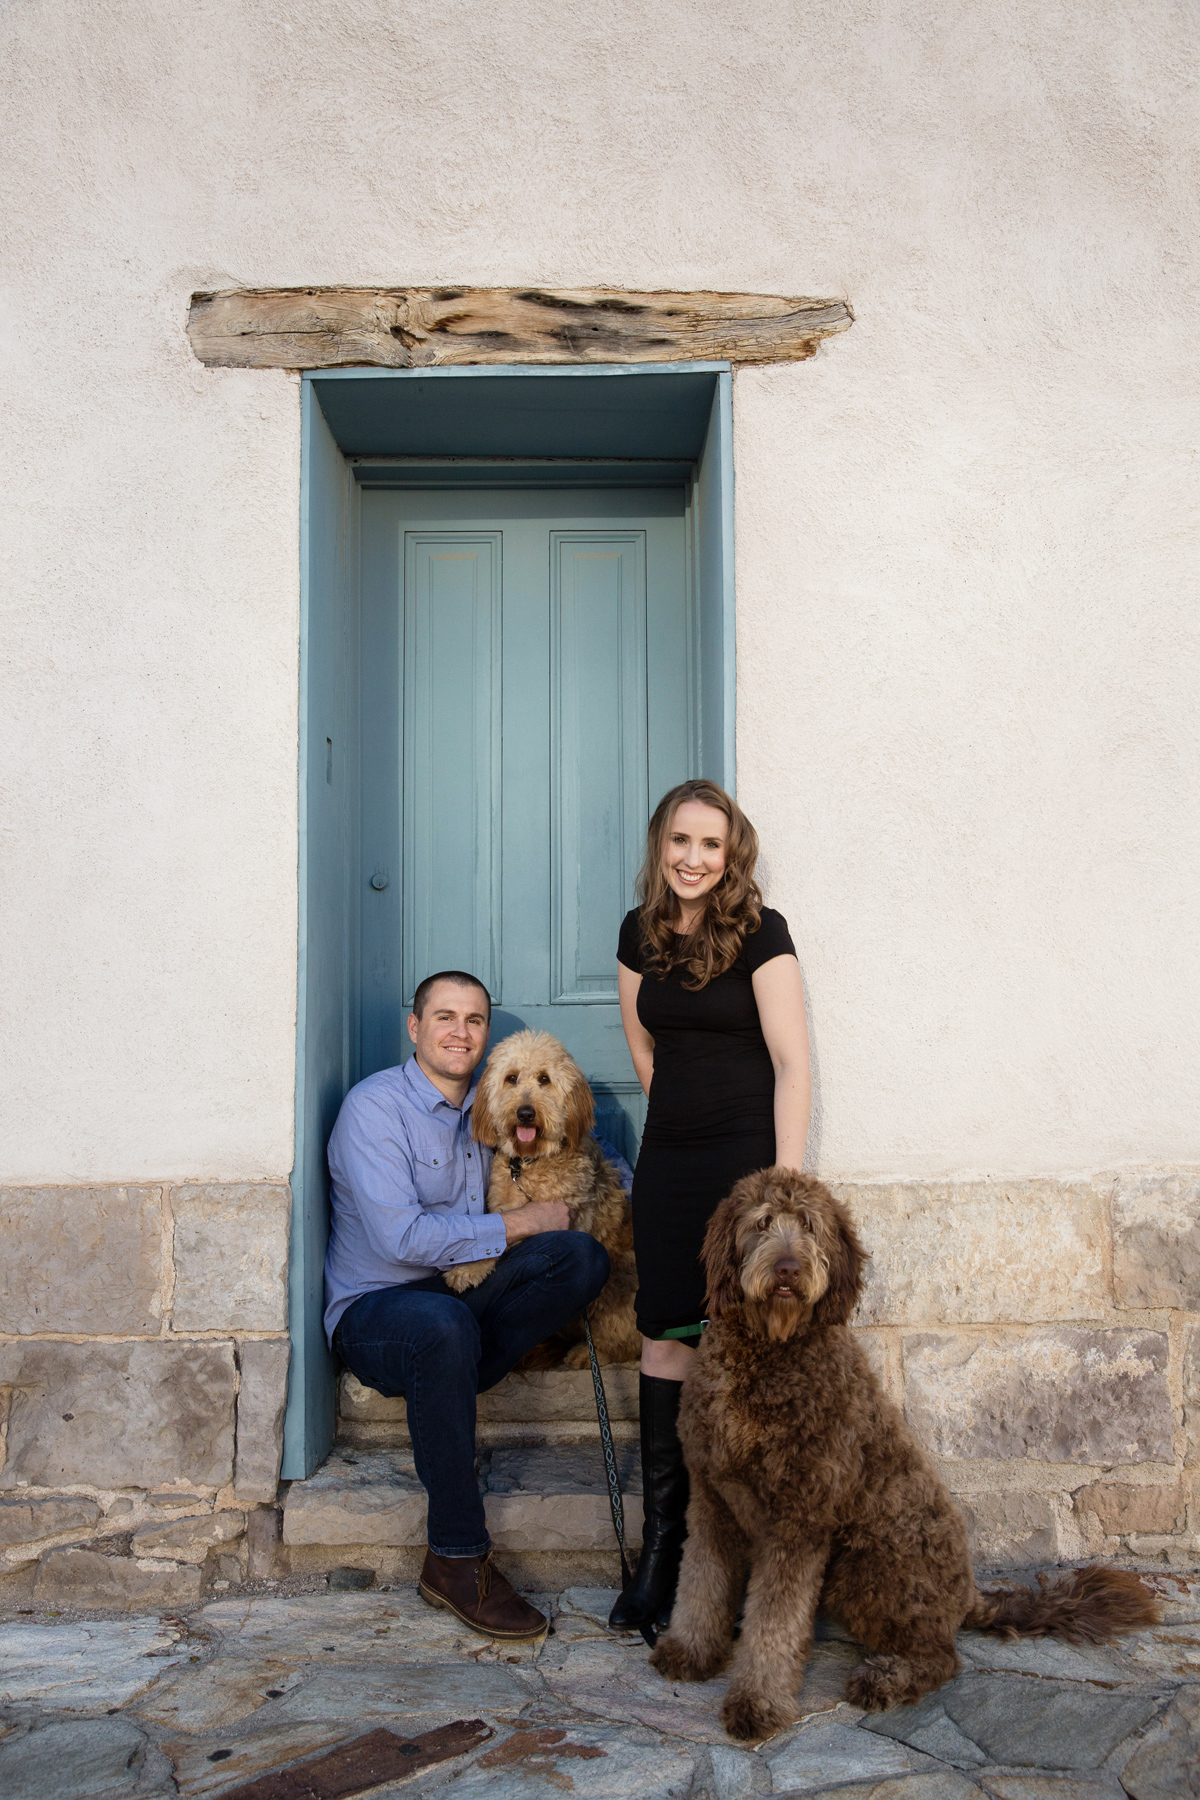 Laura and Alex Tucson Engagement photo; Lori OToole Photography; Tucson wedding, Barrio engagement